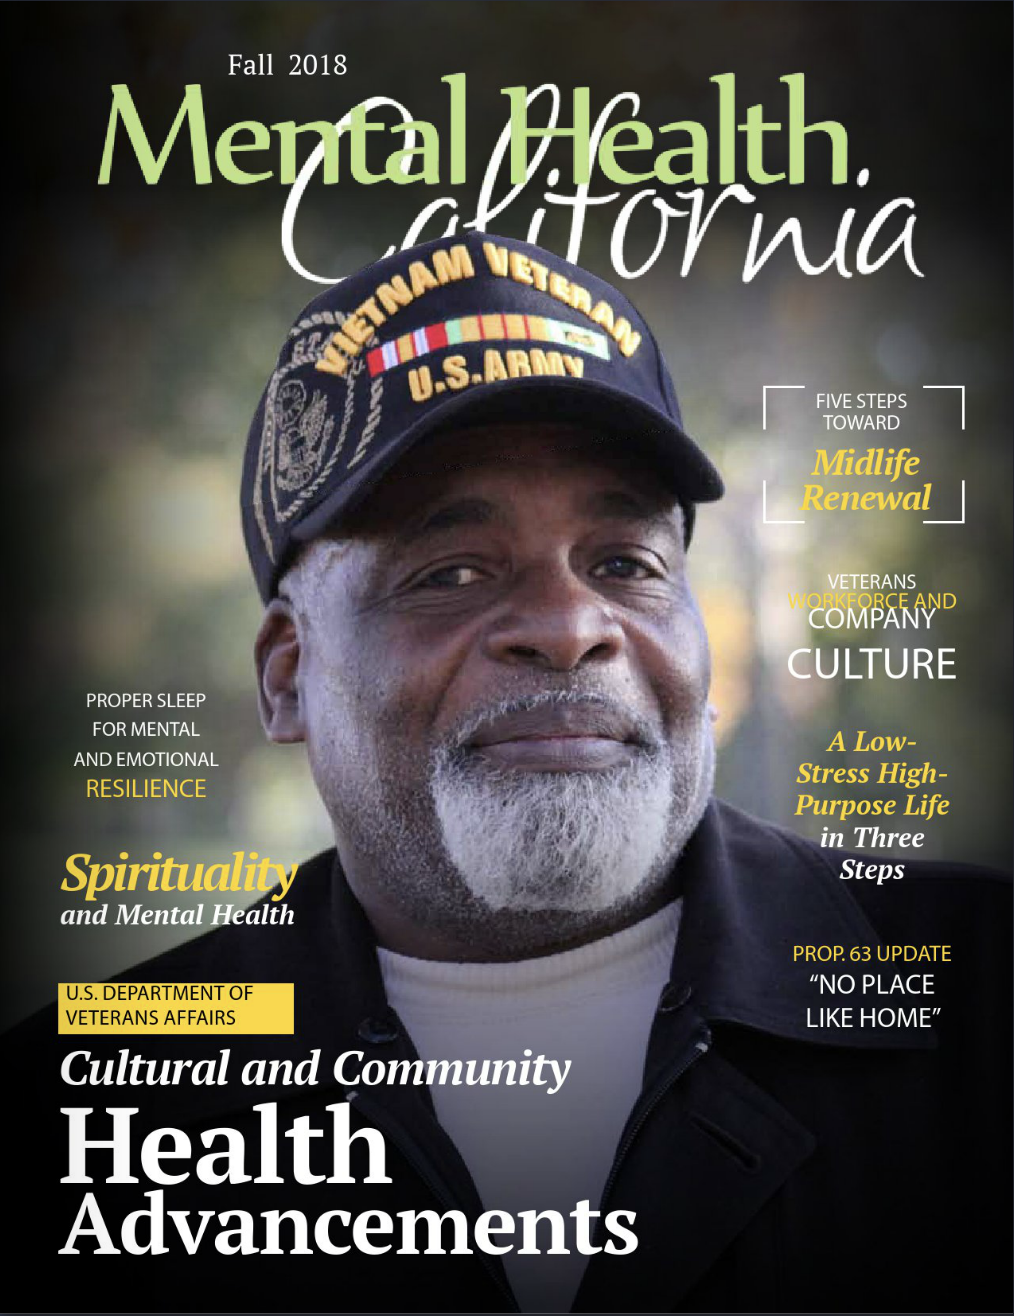 Fall 2018 Issue Of Mental Health California Magazine